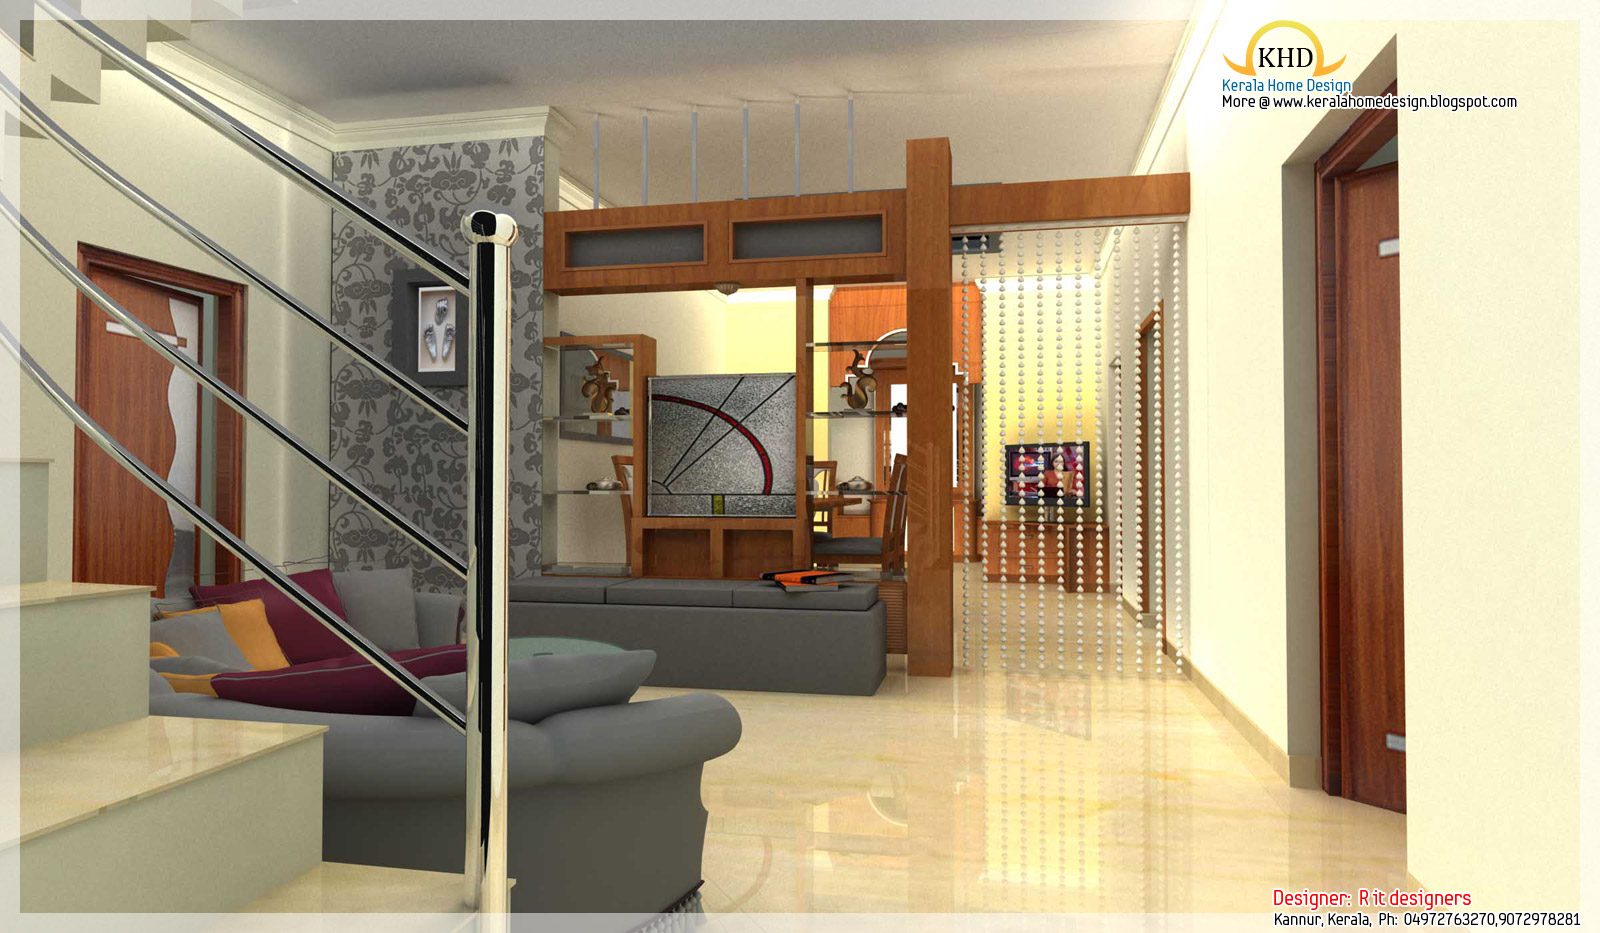 Interior design idea renderings kerala home design and for Interior house plans with photos